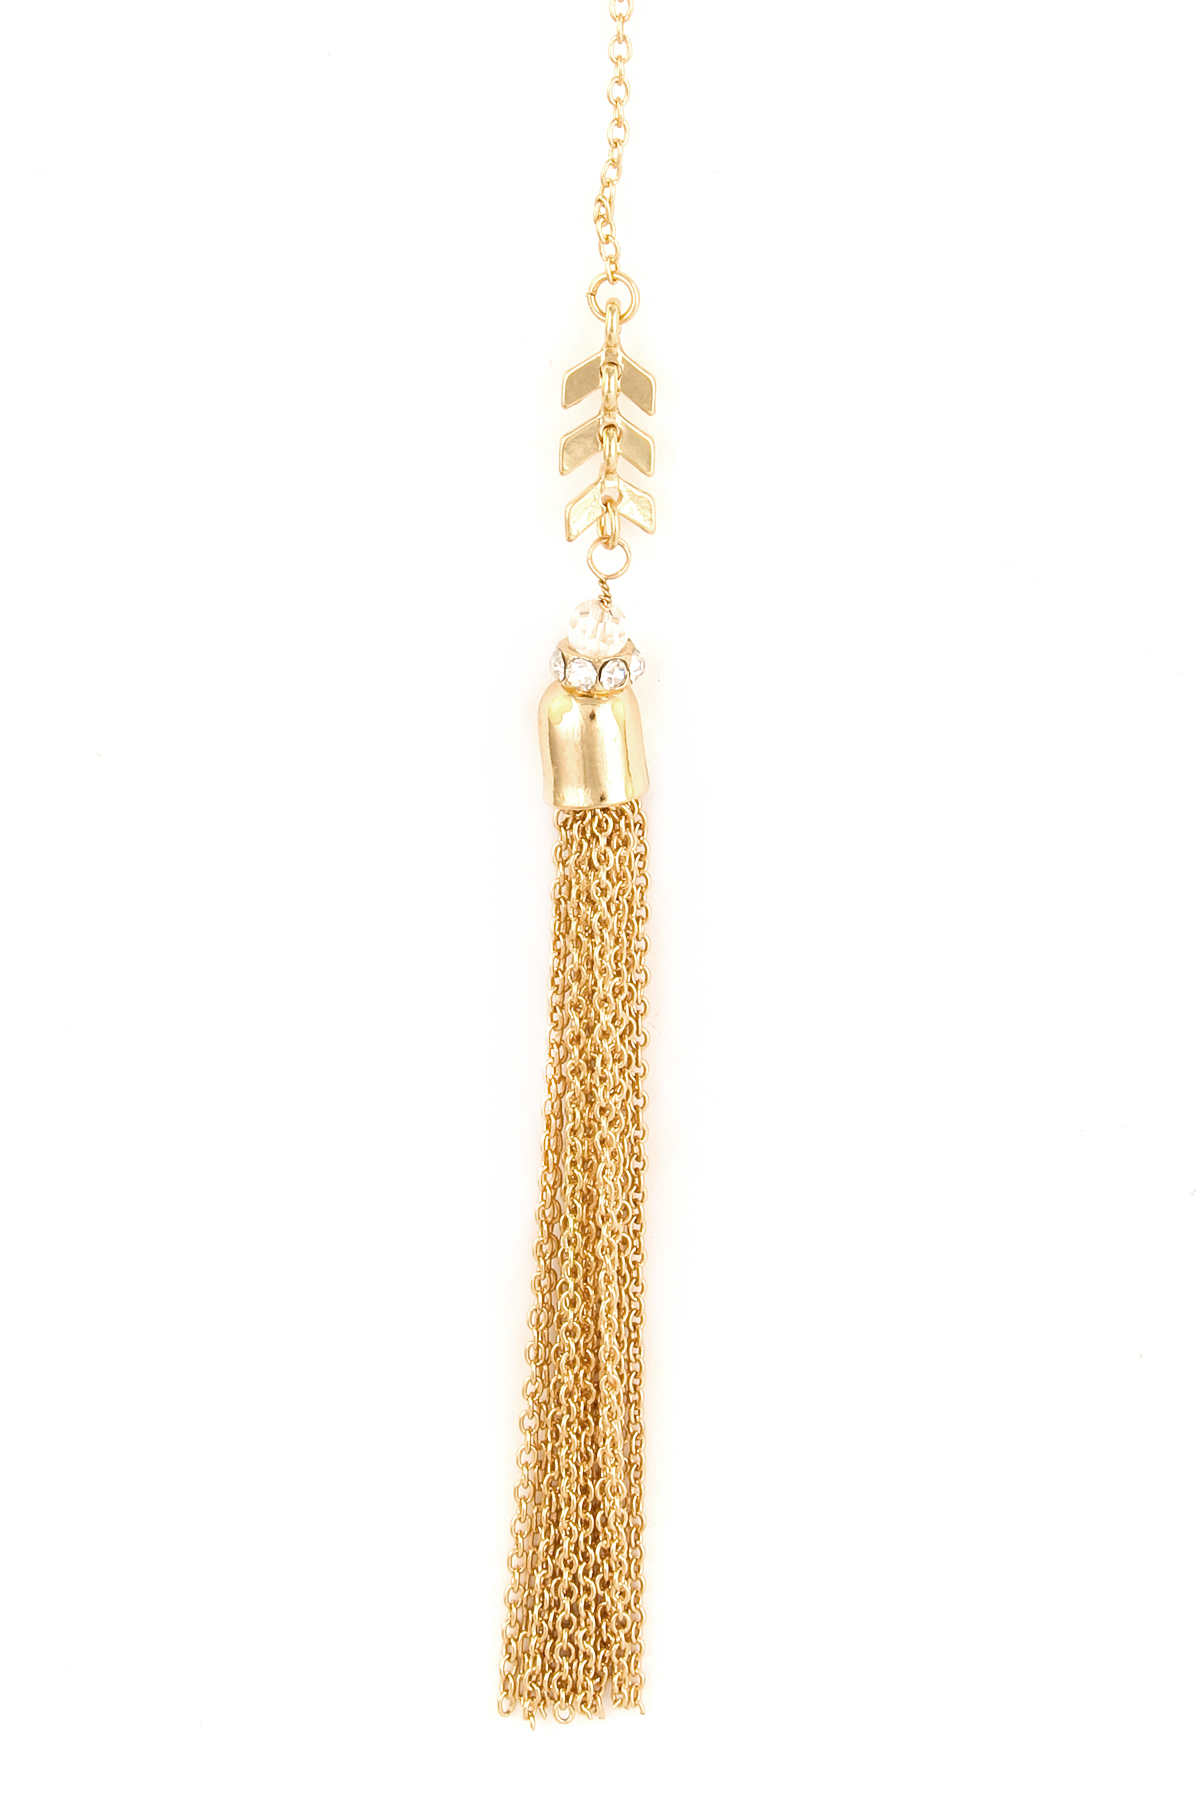 Best Quality Gold Plated Chains